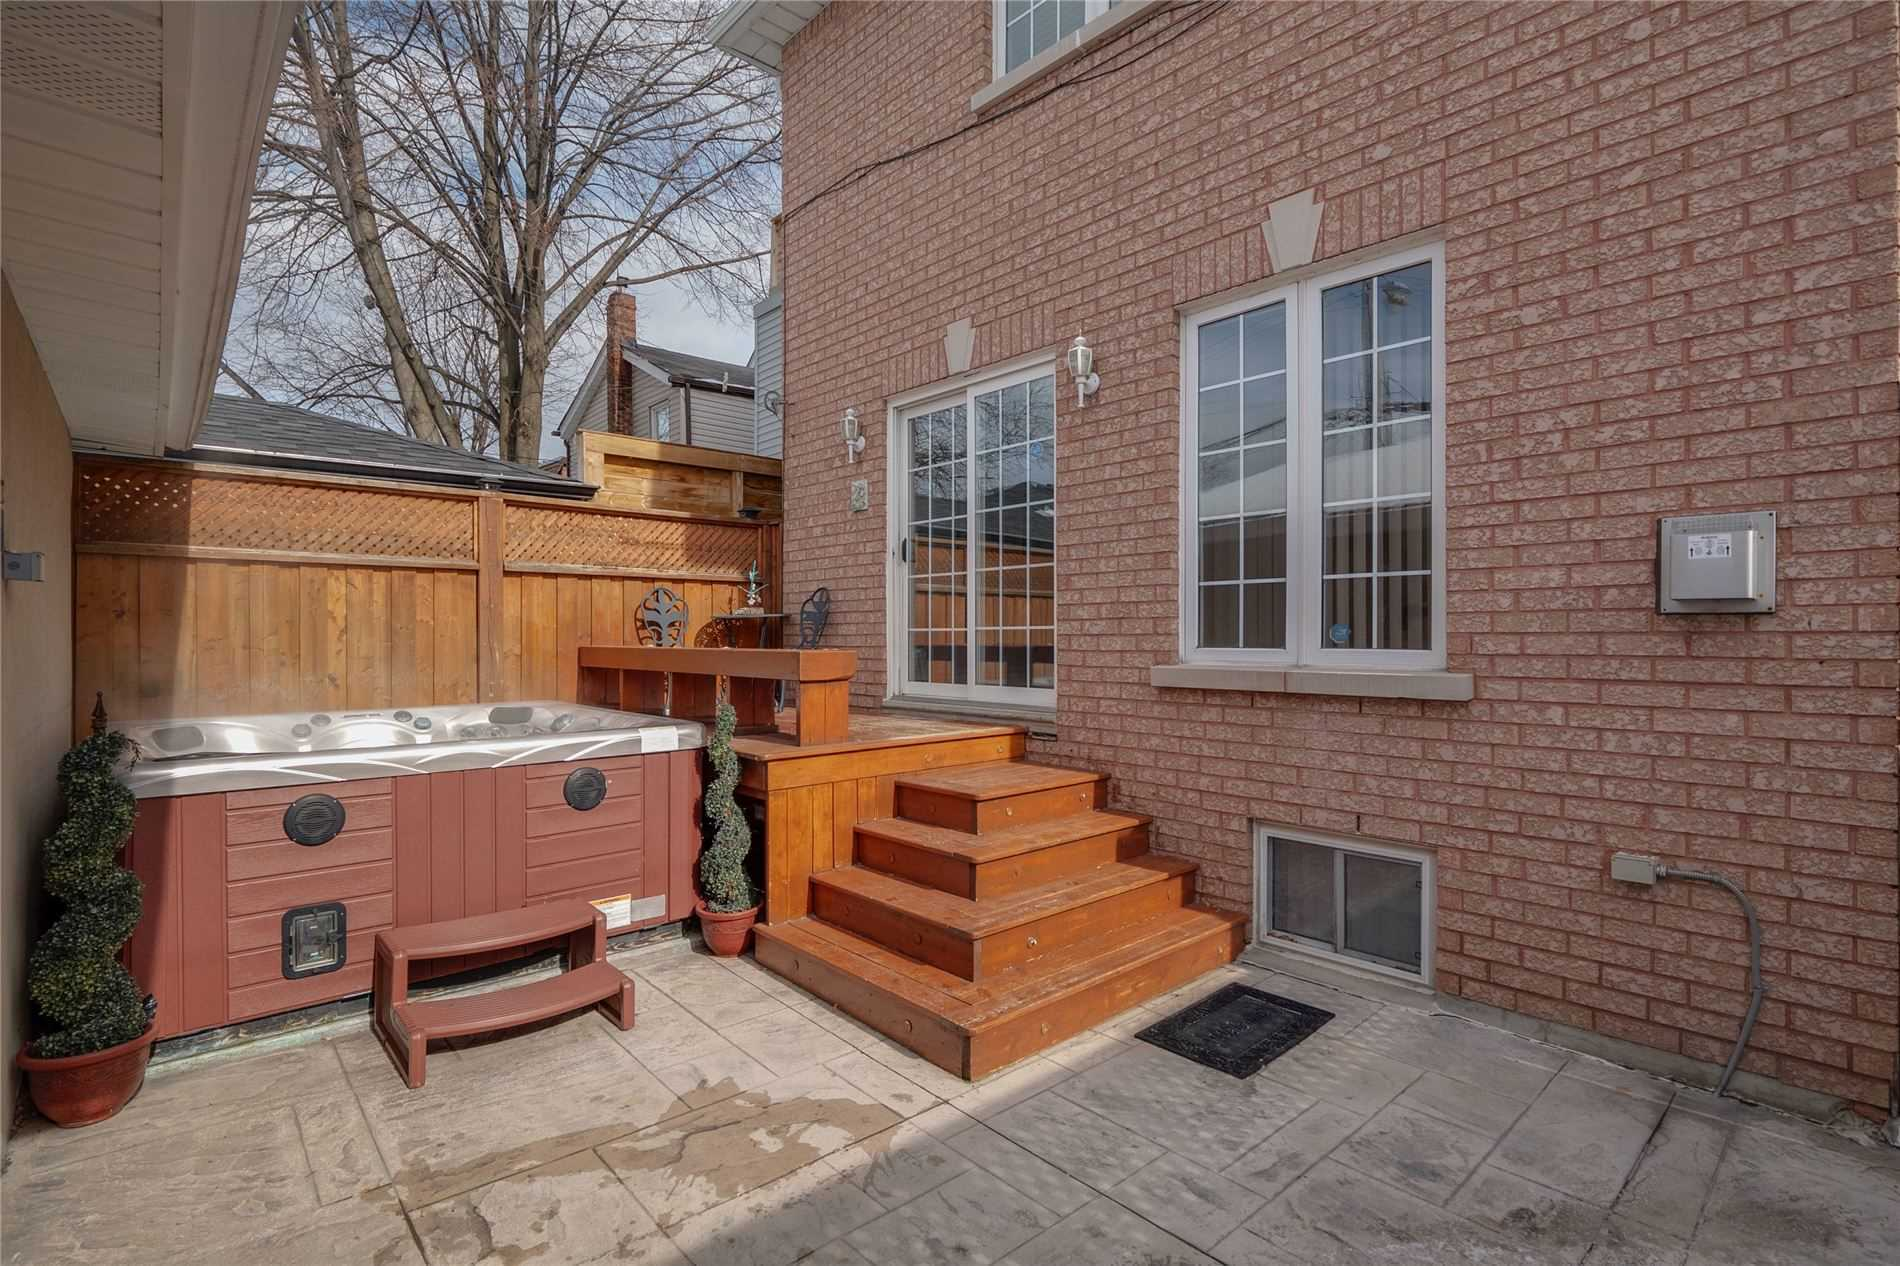 68 Sellers Ave (10)